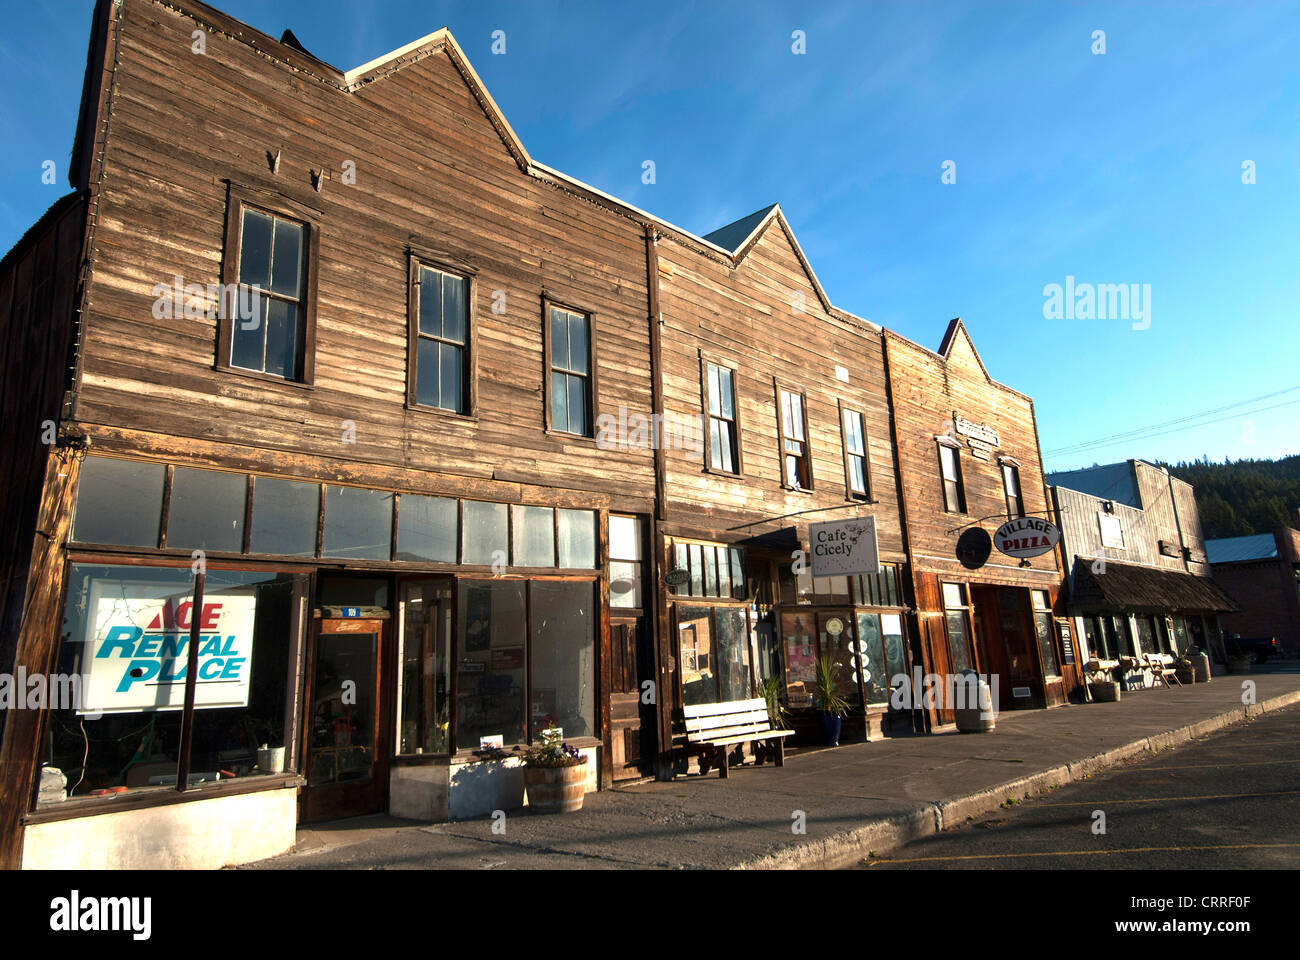 Main Street of historic coal mining town of Roslyn Washington State; used as set of TV series Northern Exposure - Stock Image